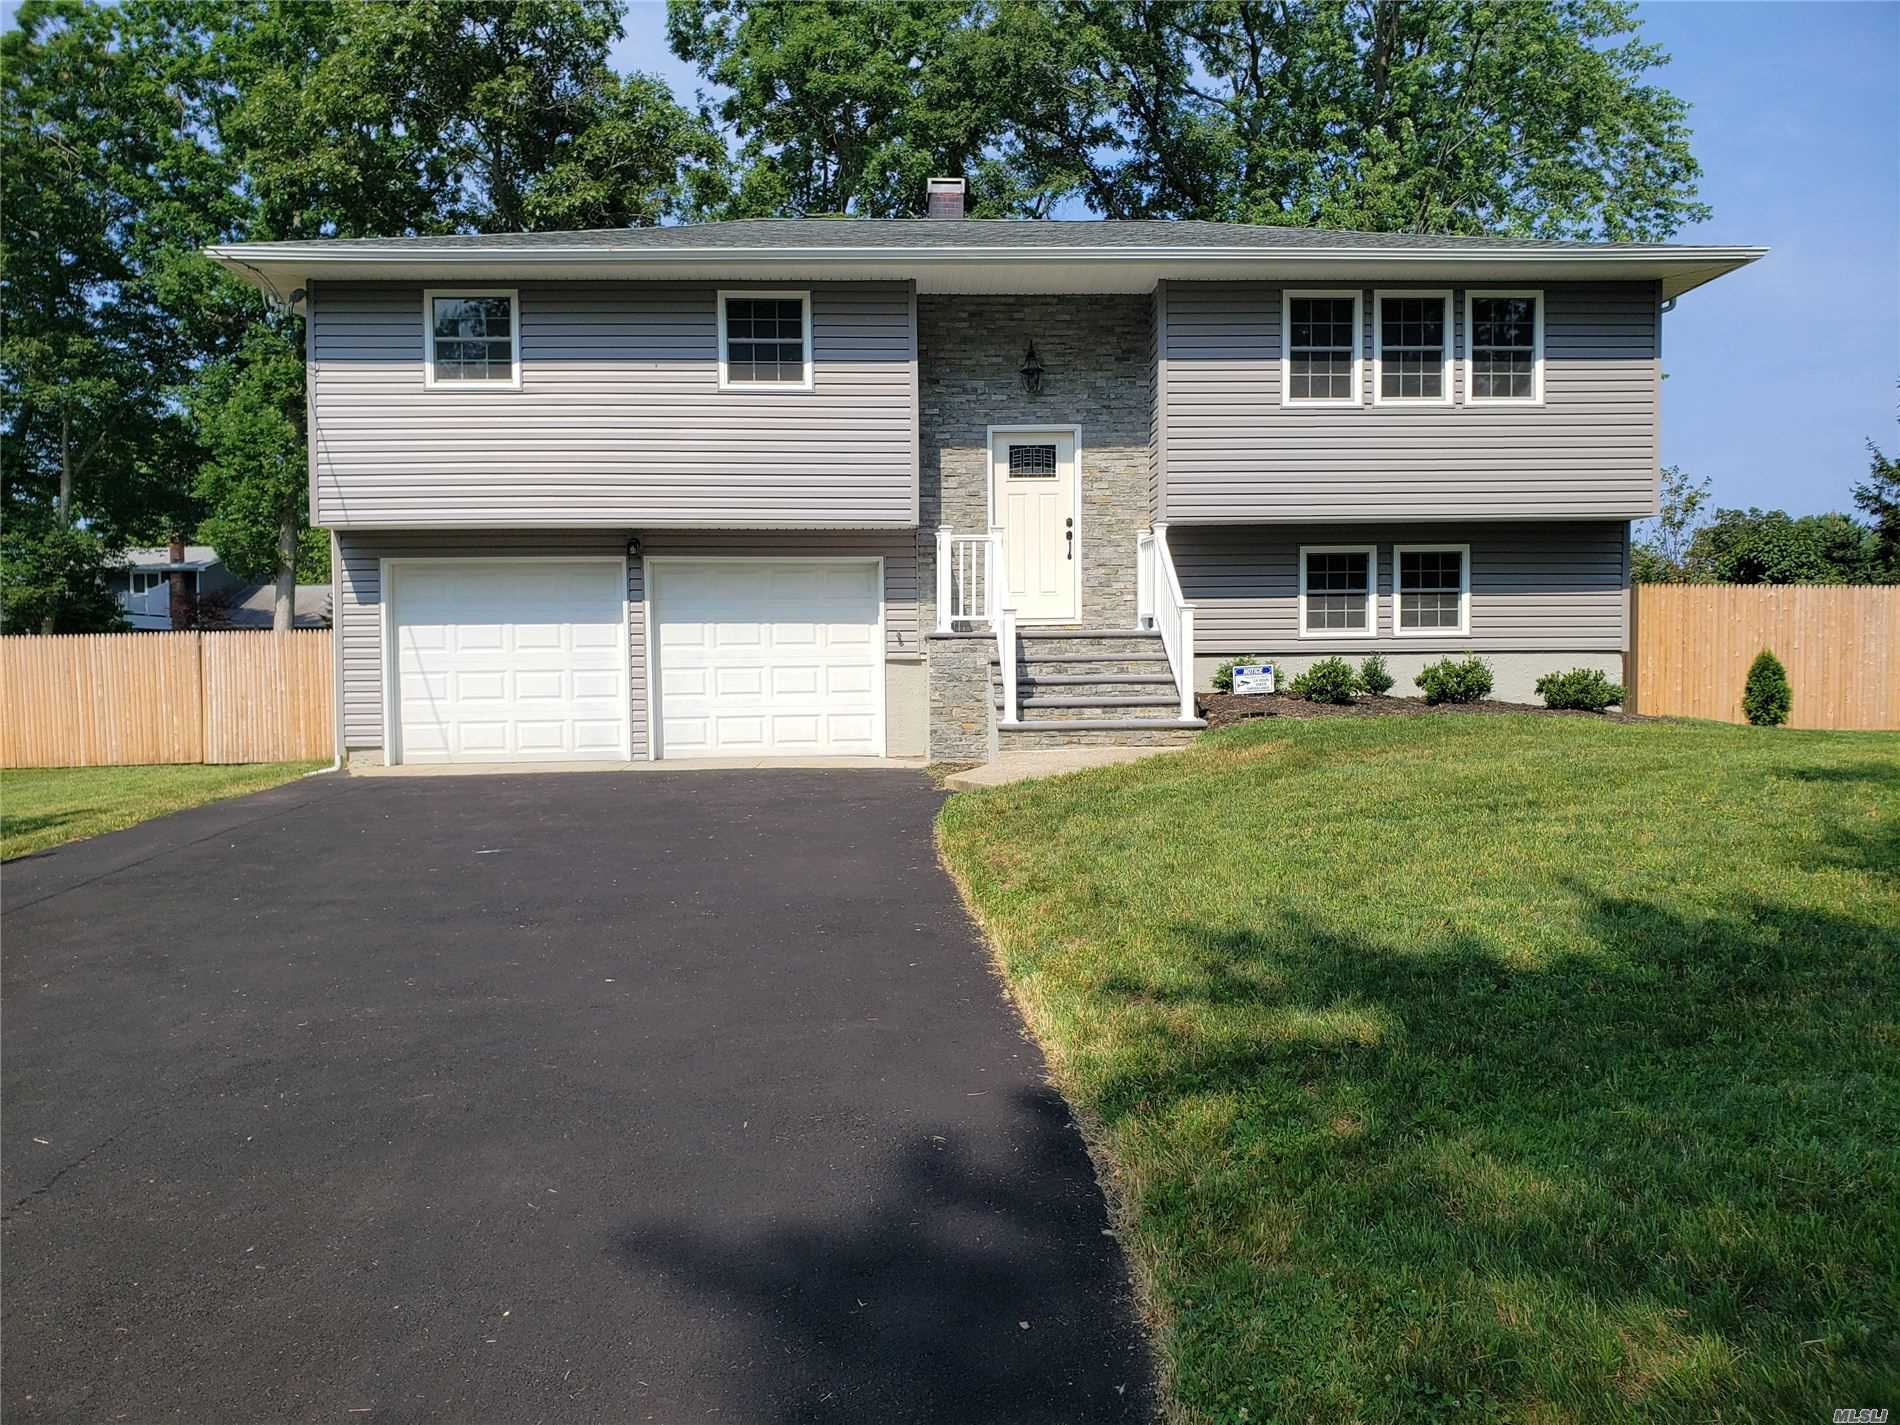 If there is one home you been waiting for all winter, then your search stops here! Absolutely Extraordinary Home beautifully & meticulously renovated w/attention to detail. Features brand new siding, new roof, new Pella windows, brand new heating system, new electric. Stunning new Granite Kitchen w/Center Island & SS Appliances. Open Floor Plan, Stunning new Baths, Gleaming hw floors, new crown moldings, new 2 panel doors, new driveway & much more! Must see to believe, remarkable transformation!